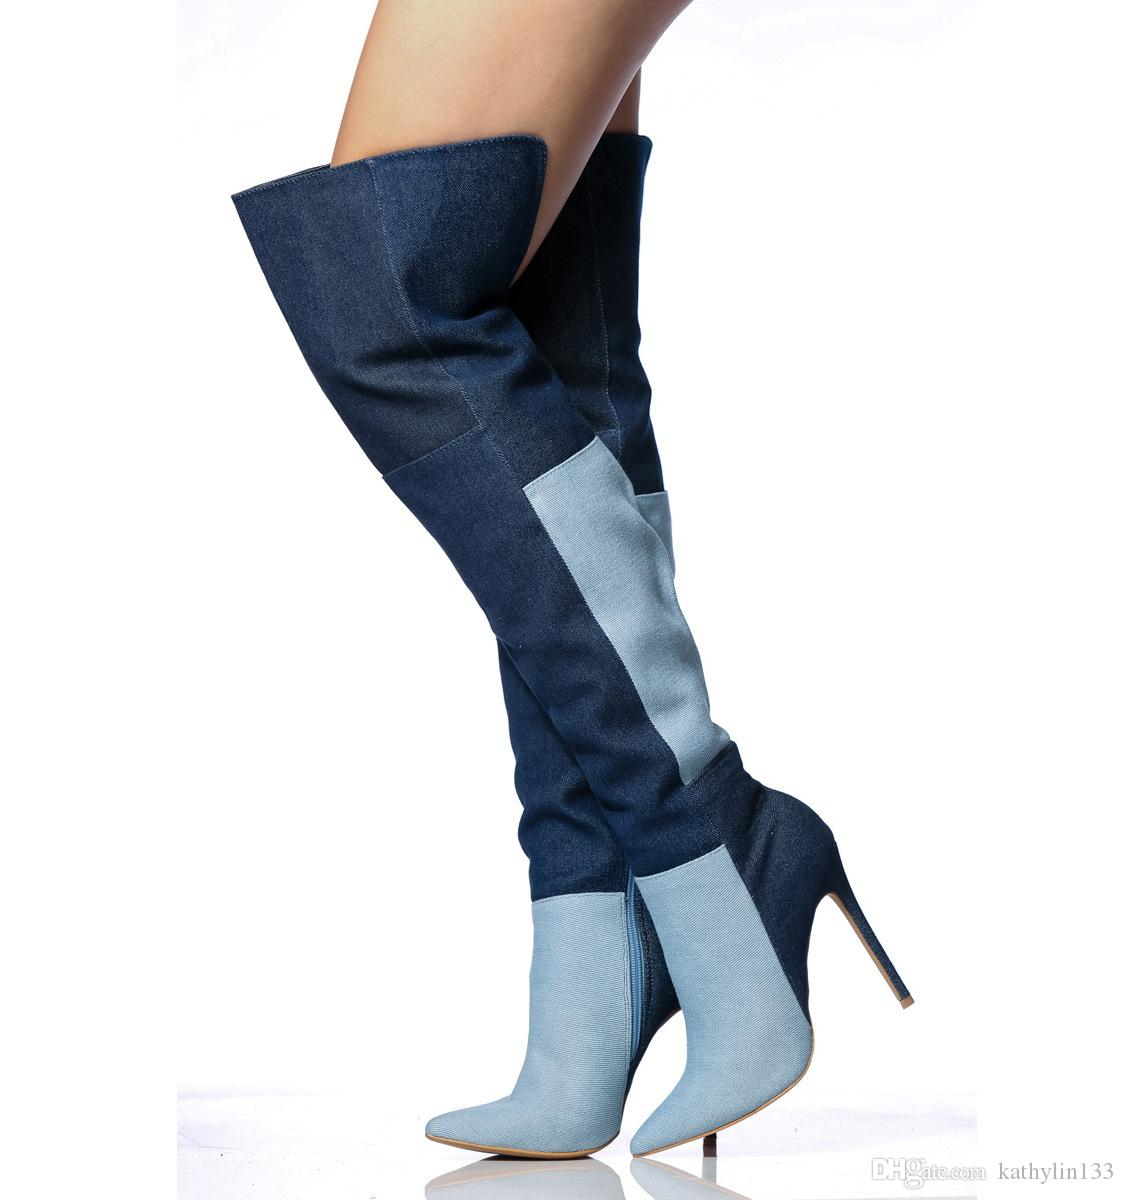 005b814026170f 2018 New Fashion Mixed Colors Denim Cloth Spring And Autumn Super High  Heels Stiletto Thigh High Boots Knee Boots Women Pointed Toe Shoes Fr Wedge  Booties ...